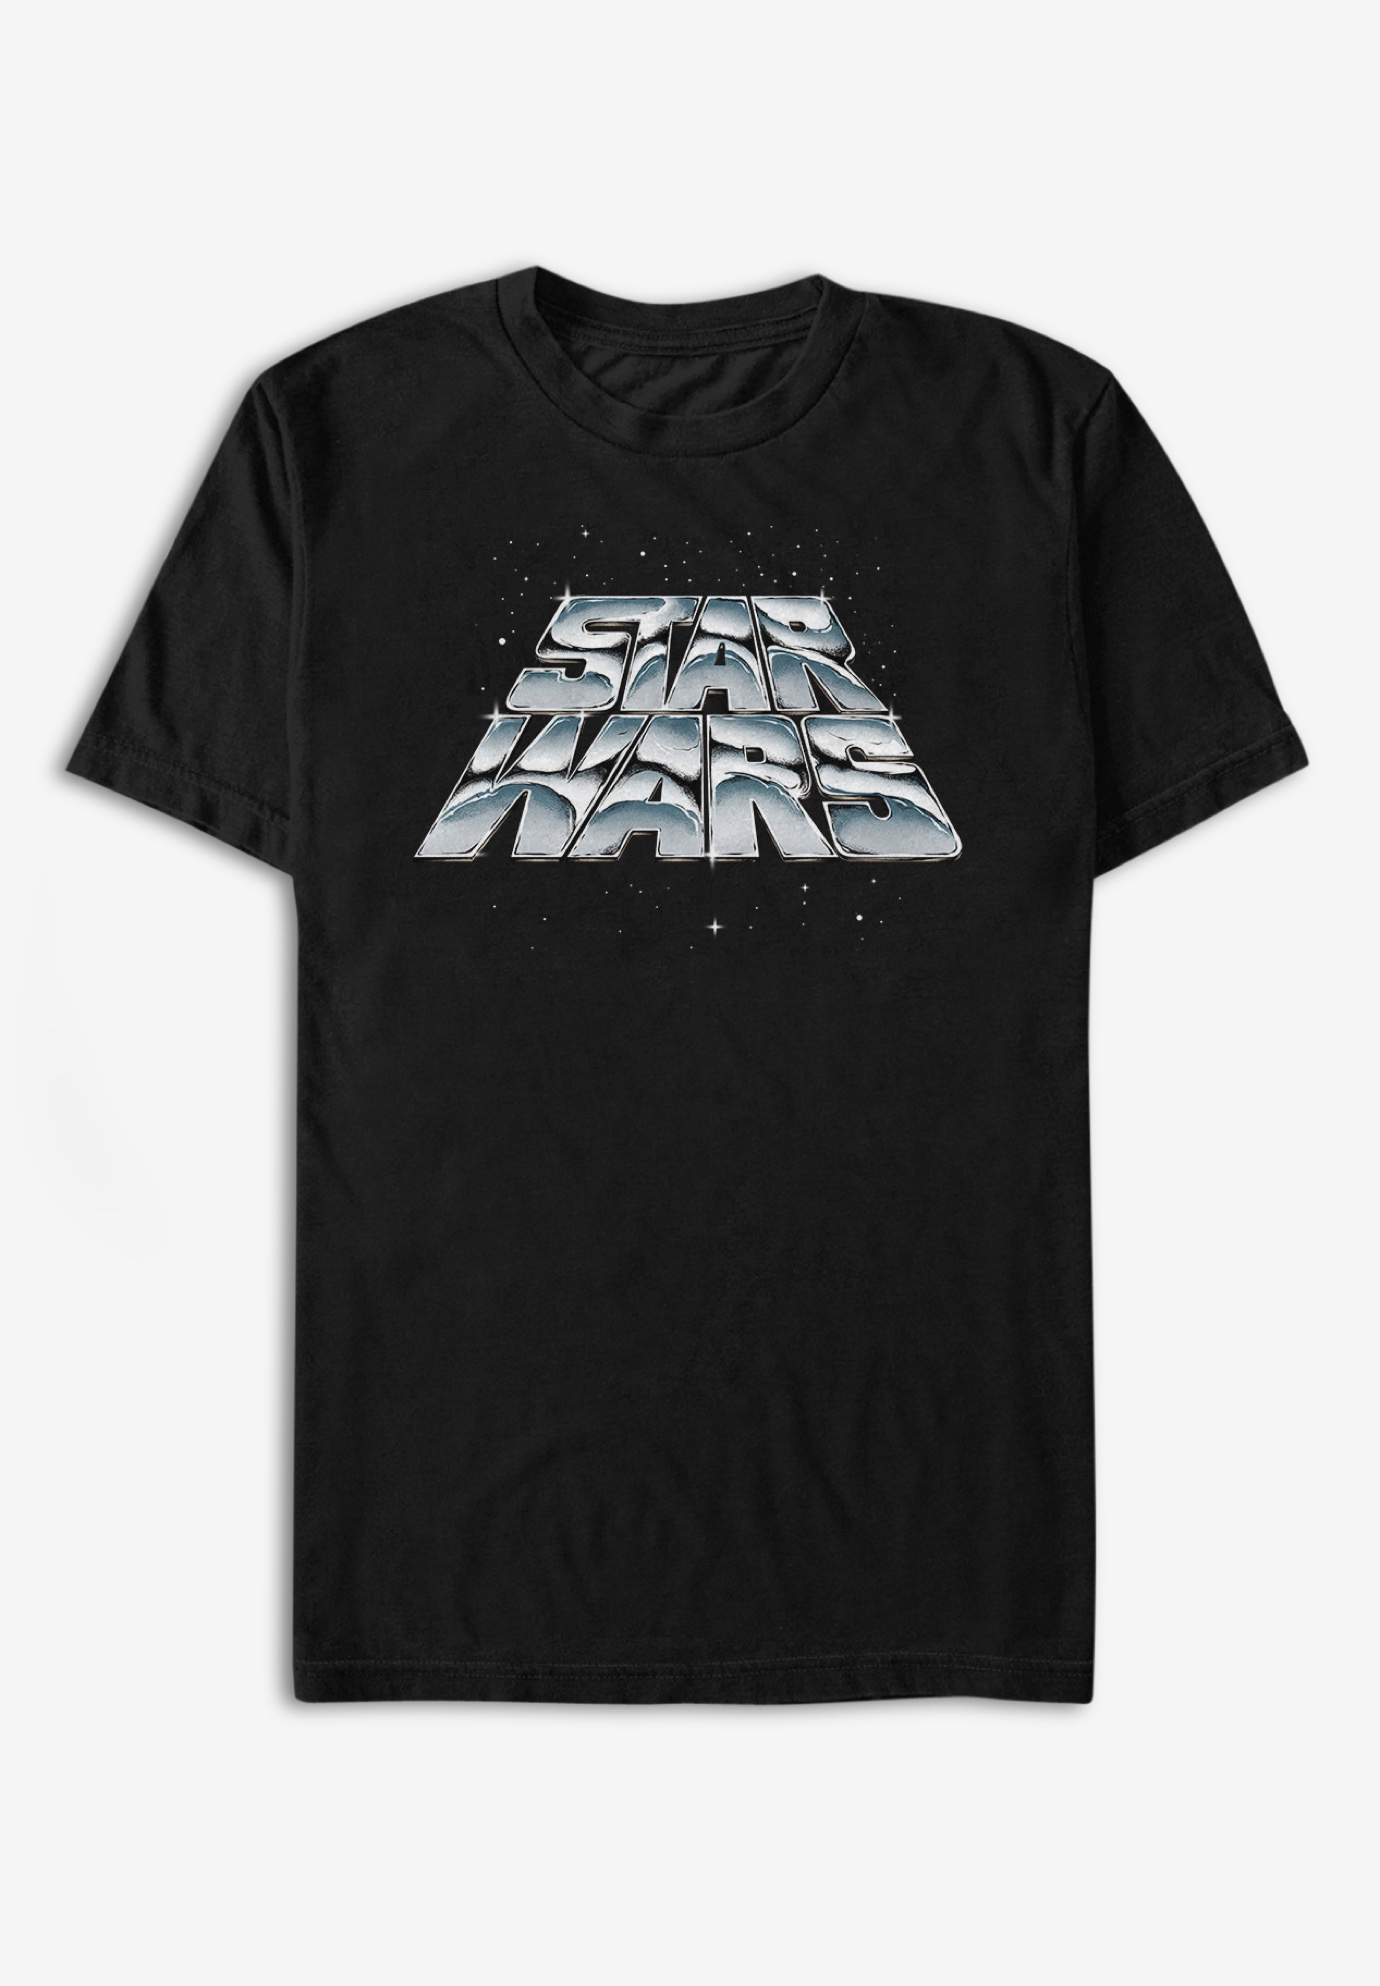 Star Wars Graphic Tee,